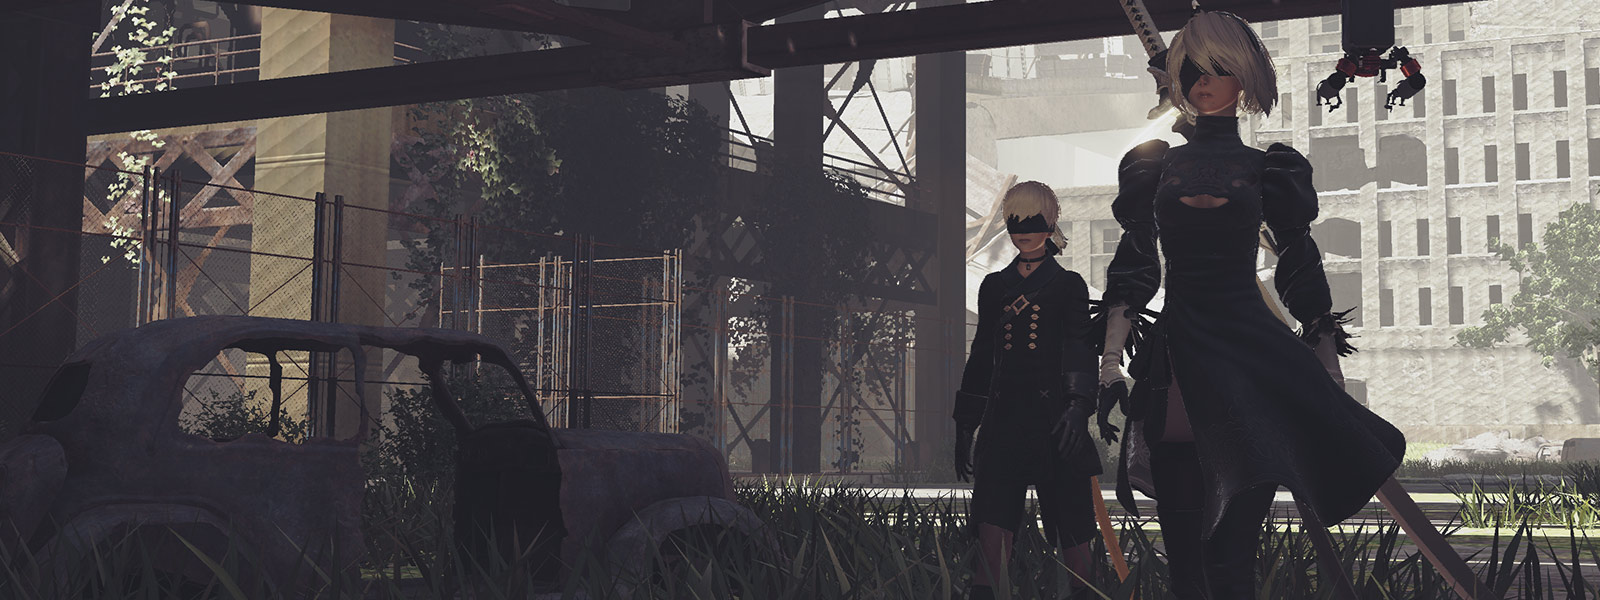 2B and 9S walk under a bridge next to a run-down car